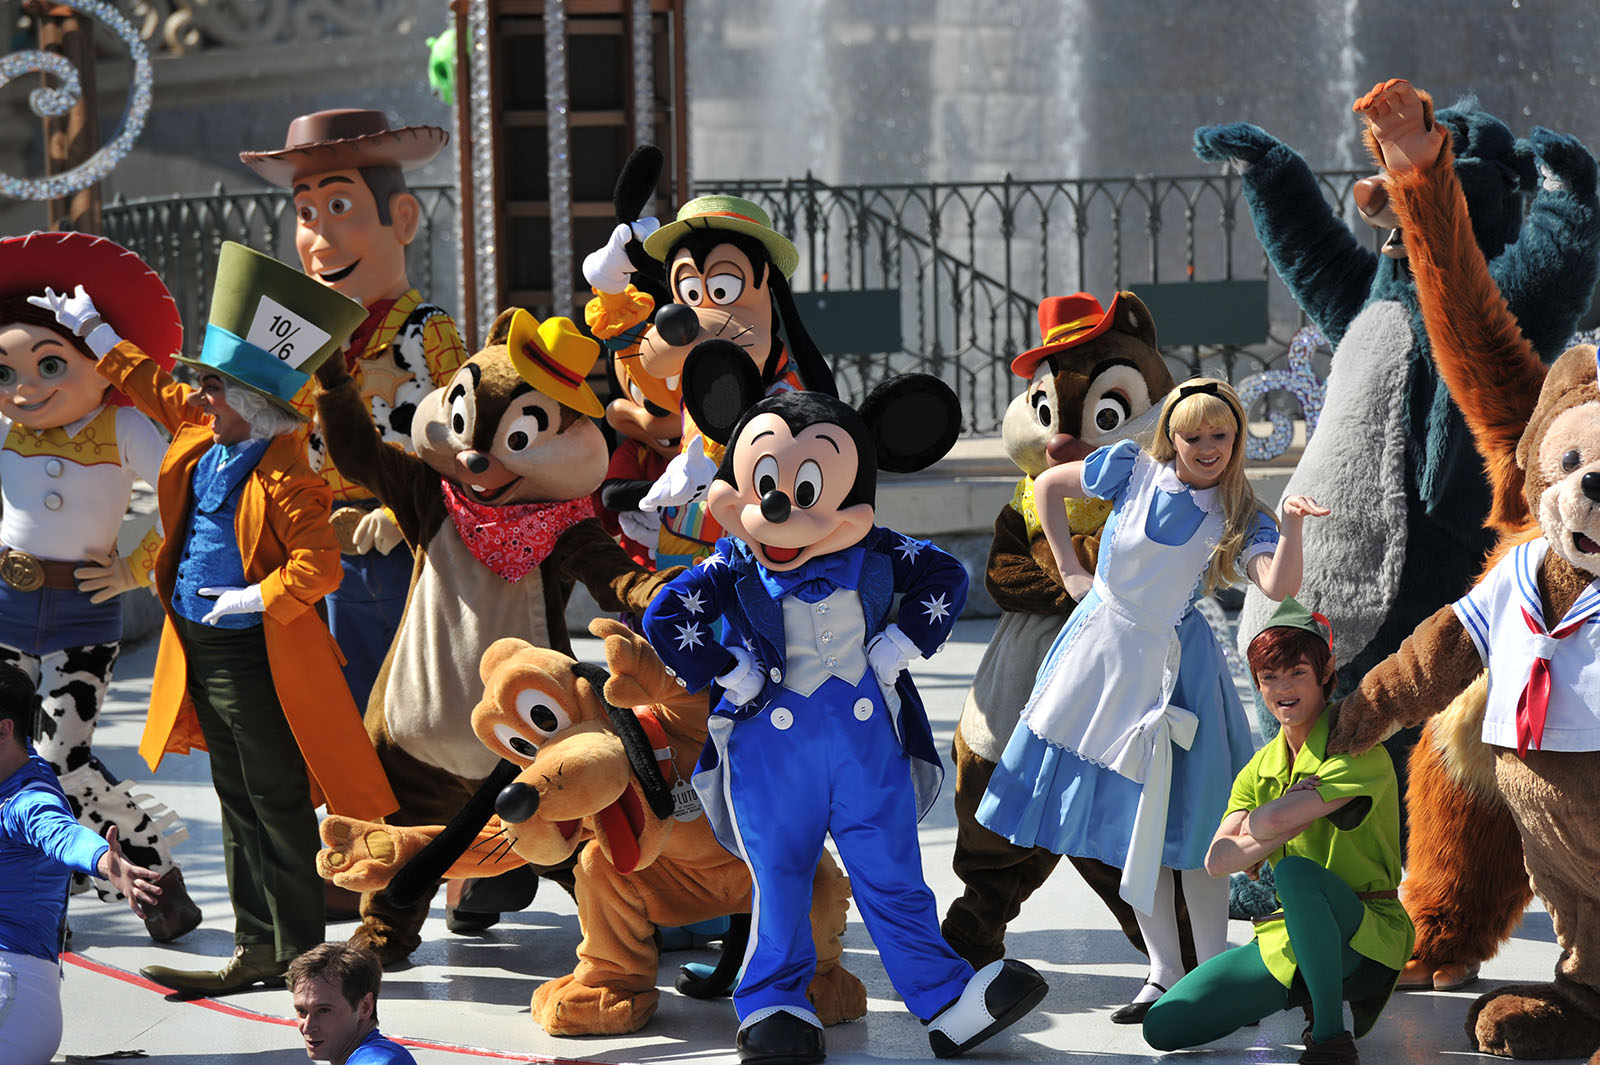 Happy Anniversary Disneyland Paris - Characters